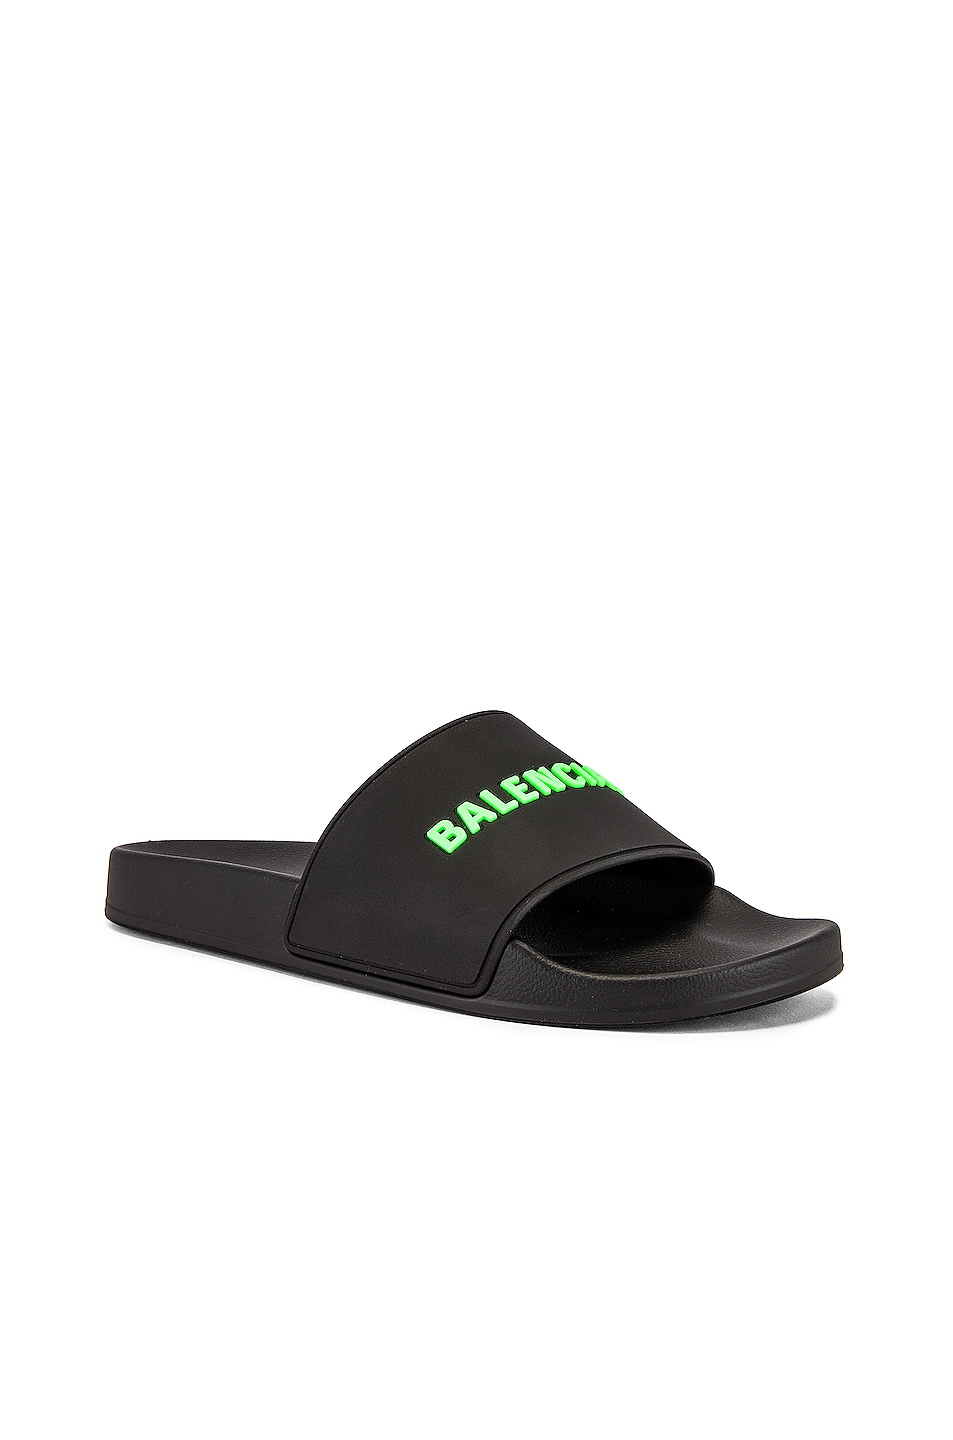 Image 1 of Balenciaga Rubber Logo Pool Slide in Black & Fluo Green